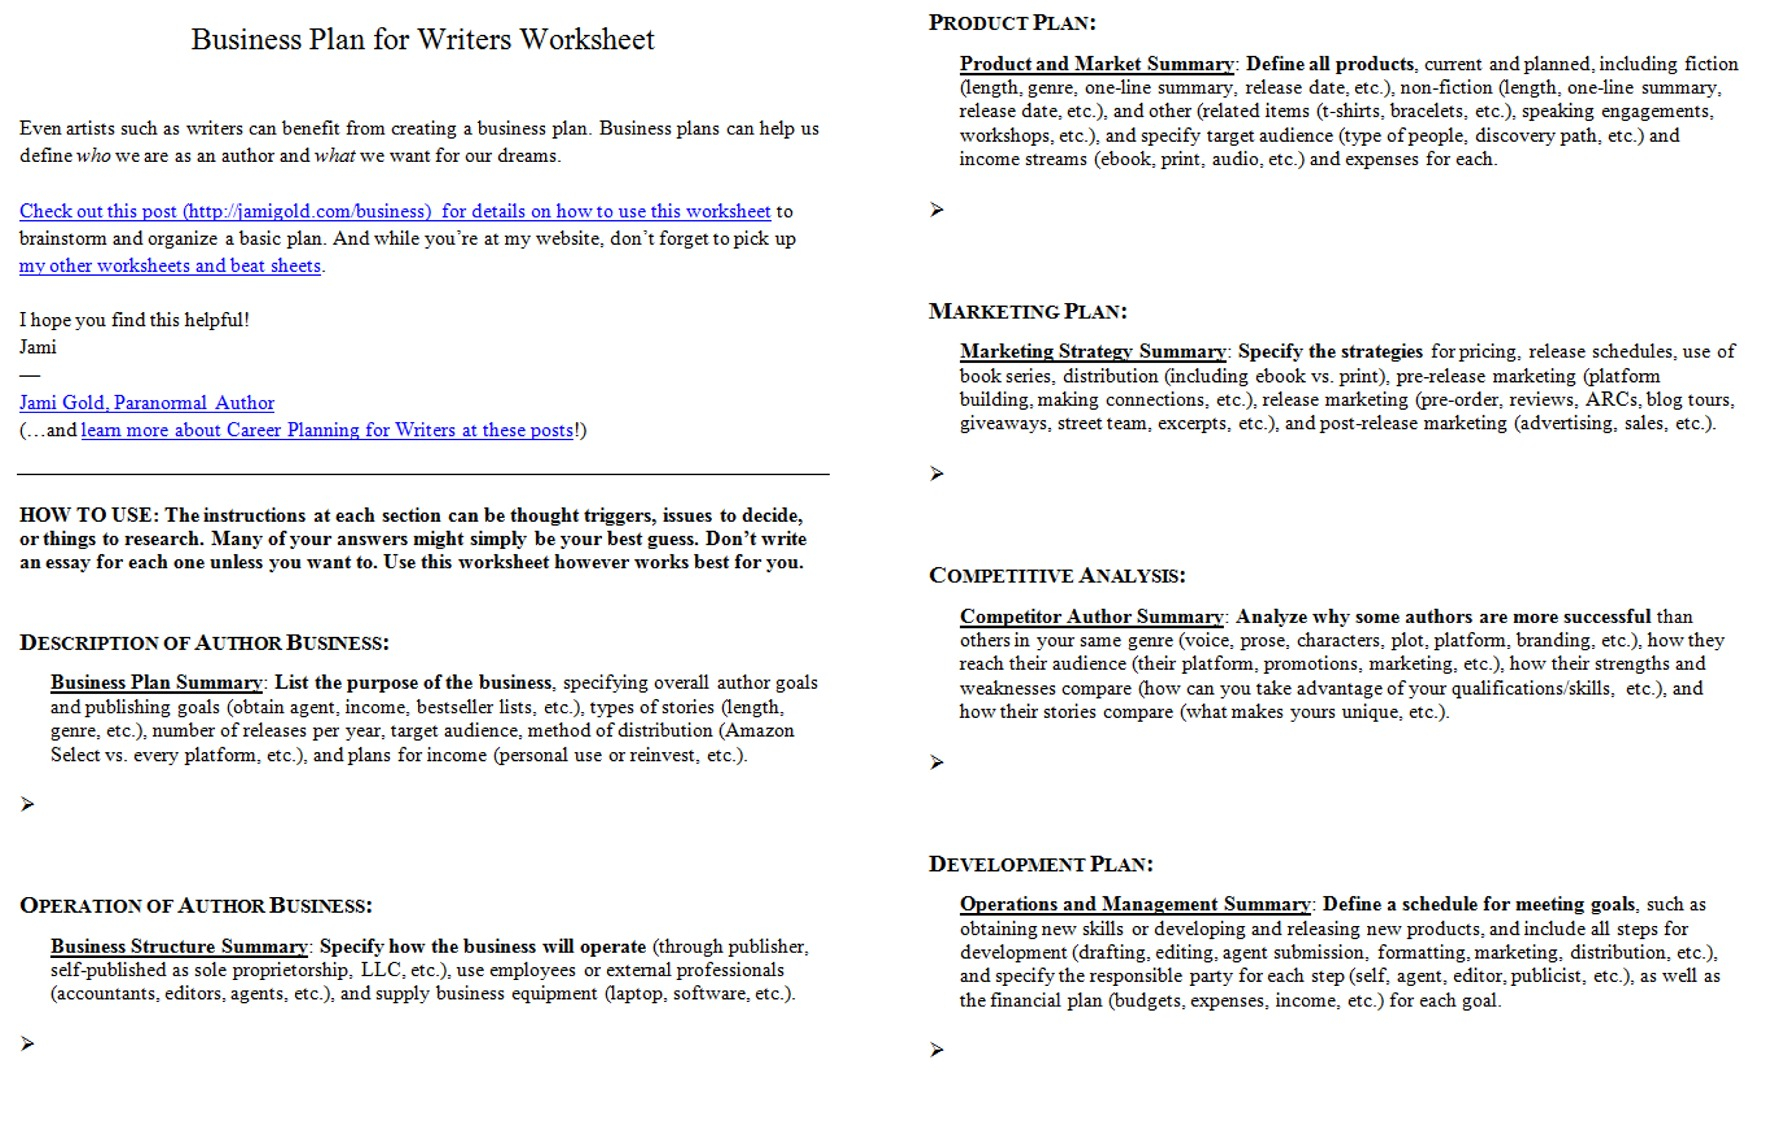 Weirdmailus  Terrific Worksheets For Writers  Jami Gold Paranormal Author With Inspiring Screen Shot Of Both Pages Of The Business Plan For Writers Worksheet With Beauteous Fun Math Activity Worksheets Also Reading Comprehension Worksheets Rd Grade Free Printables In Addition Earth Day Comprehension Worksheets And St Grade Sentences Worksheets As Well As Kindergarten Blends Worksheets Additionally Winter Printable Worksheets From Jamigoldcom With Weirdmailus  Inspiring Worksheets For Writers  Jami Gold Paranormal Author With Beauteous Screen Shot Of Both Pages Of The Business Plan For Writers Worksheet And Terrific Fun Math Activity Worksheets Also Reading Comprehension Worksheets Rd Grade Free Printables In Addition Earth Day Comprehension Worksheets From Jamigoldcom